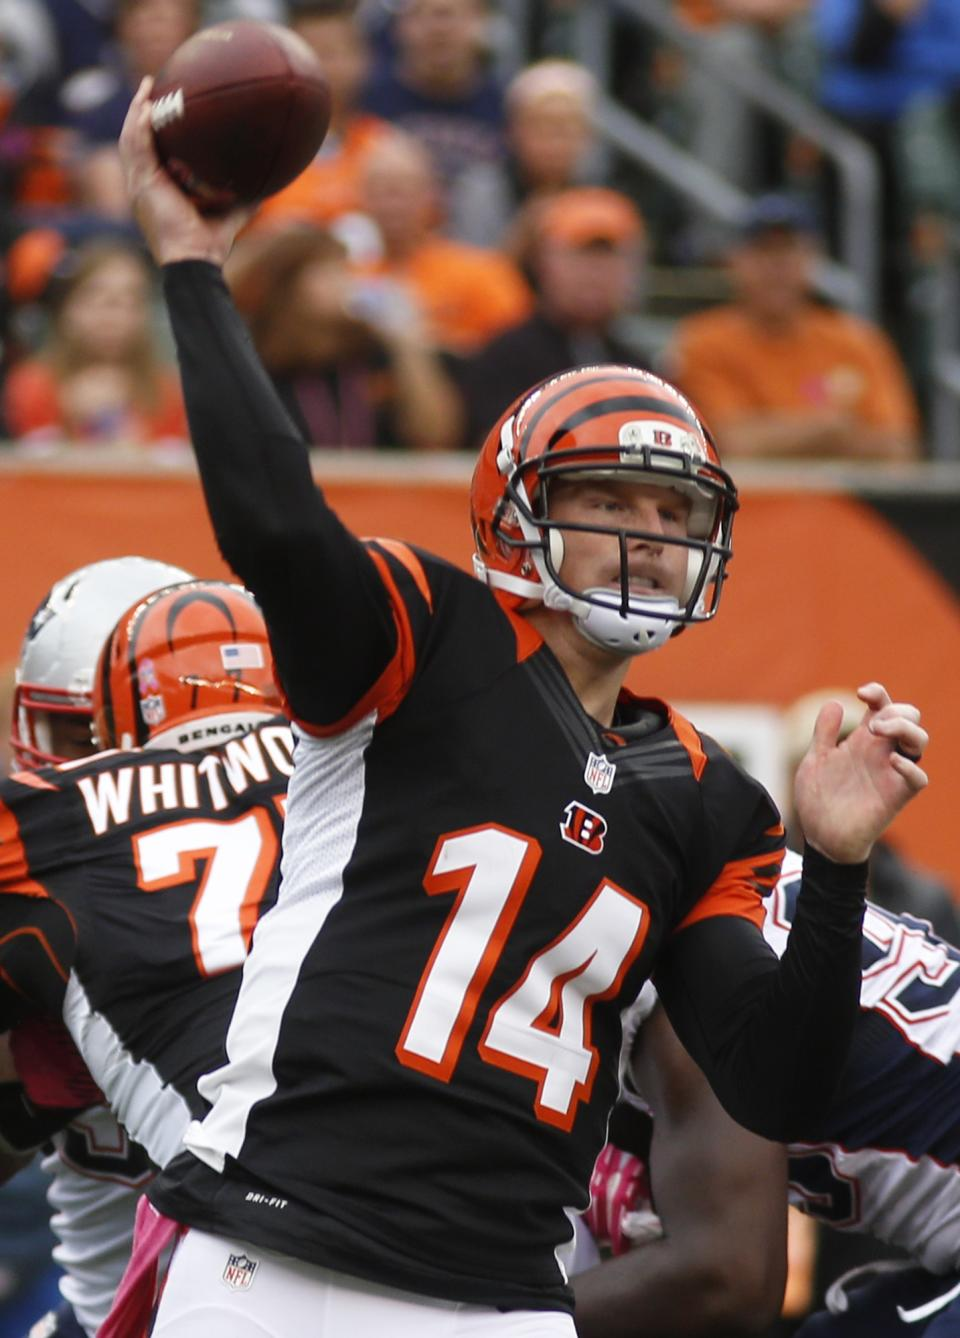 Cincinnati Bengals quarterback Andy Dalton passes against the New England Patriots in the first half of an NFL football game on Sunday, Oct. 6, 2013, in Cincinnati. (AP Photo/David Kohl)